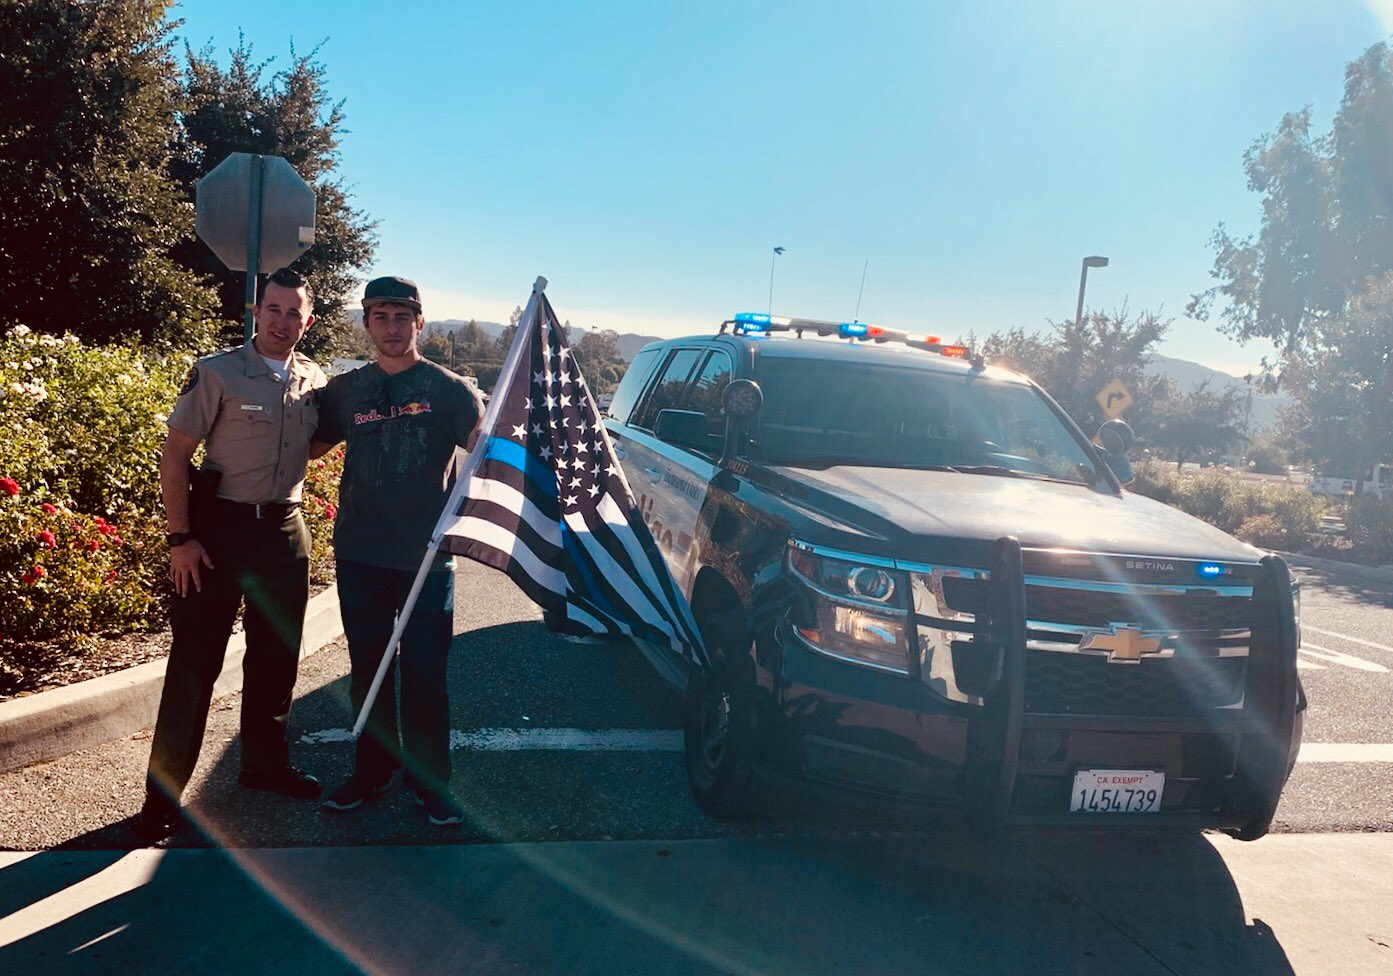 This gentleman showed up at the fire incident command post entrance to show his gratitude for Sgt. Ron Helus, waving the Thin Blue Line U.S. flag on the street corner.  The man said Sgt. Helus saved lives, including his friends, who were injured, but escaped due to Ron's heroism. https://t.co/7pUQXu5Zog